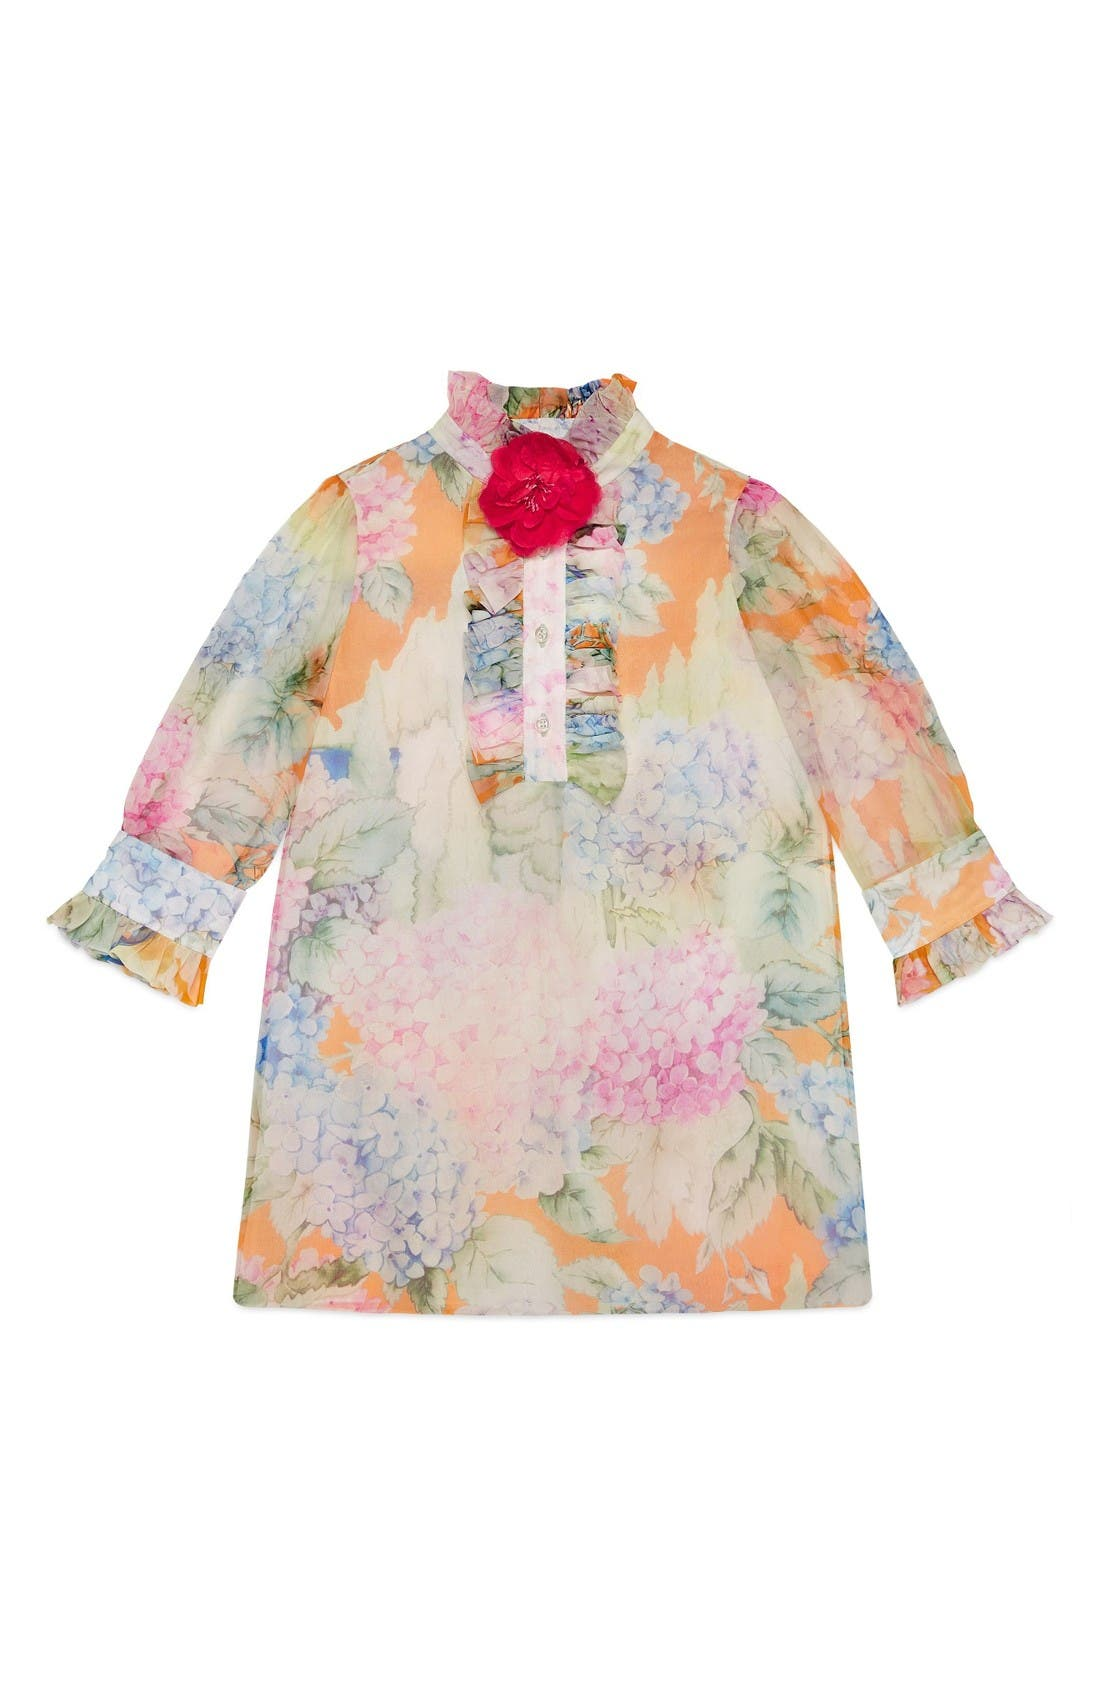 Main Image - Gucci Flower Ruffle Silk Organza Dress (Little Girls & Big Girls)